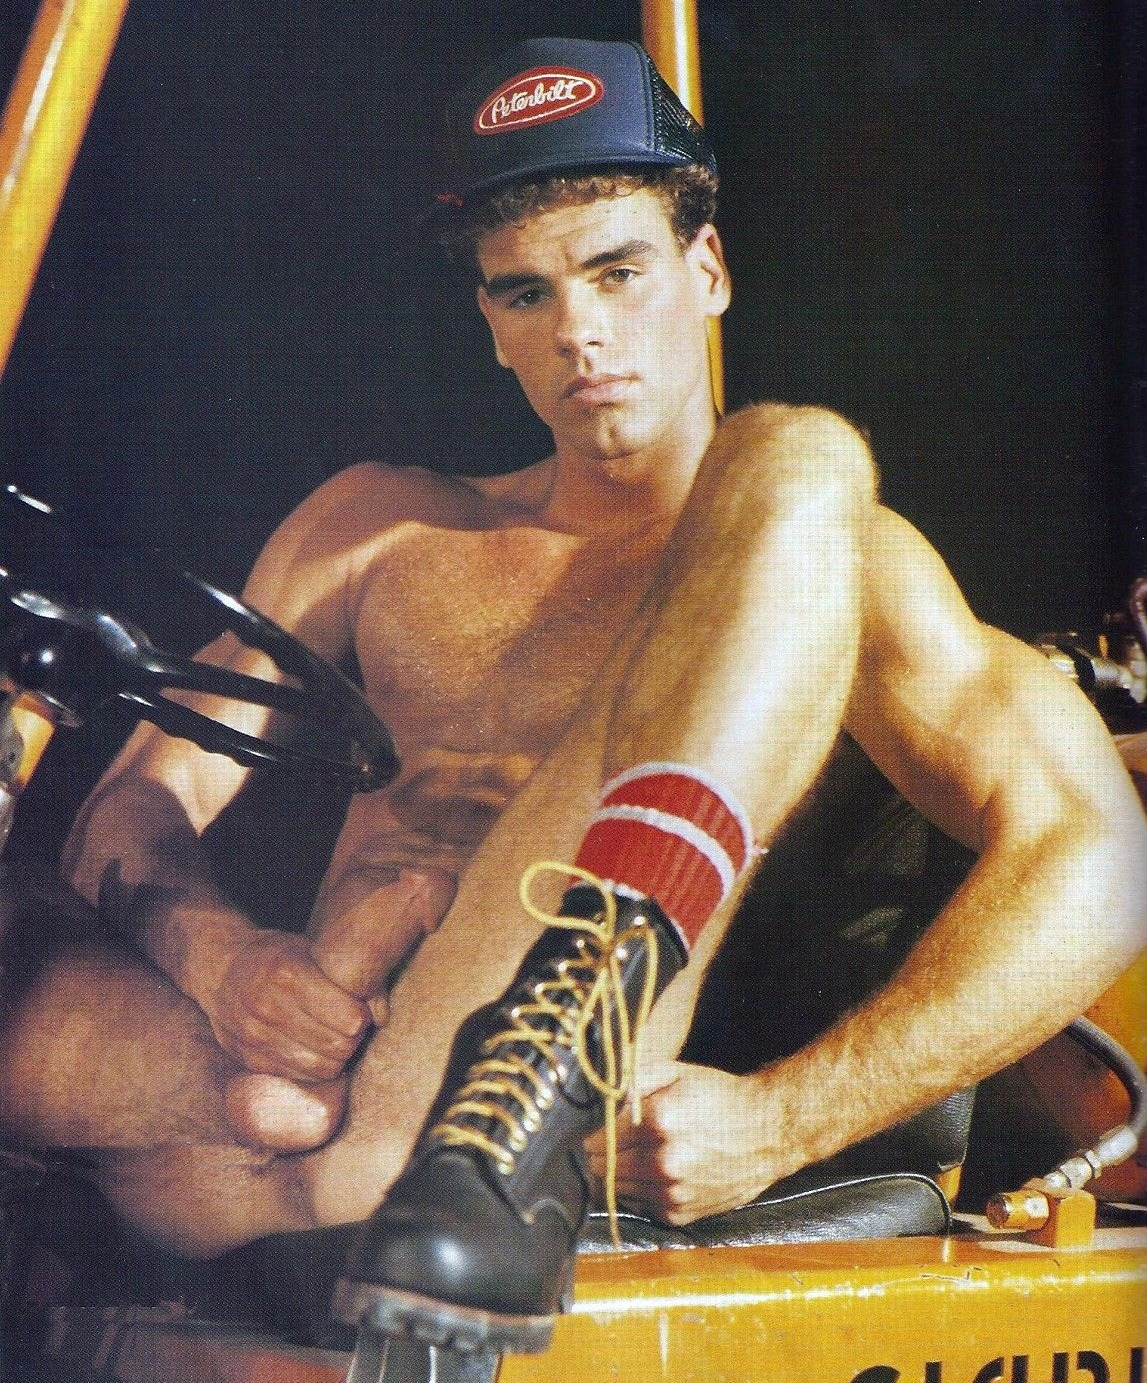 Ray Stockwell gay vintage hot dude men porn